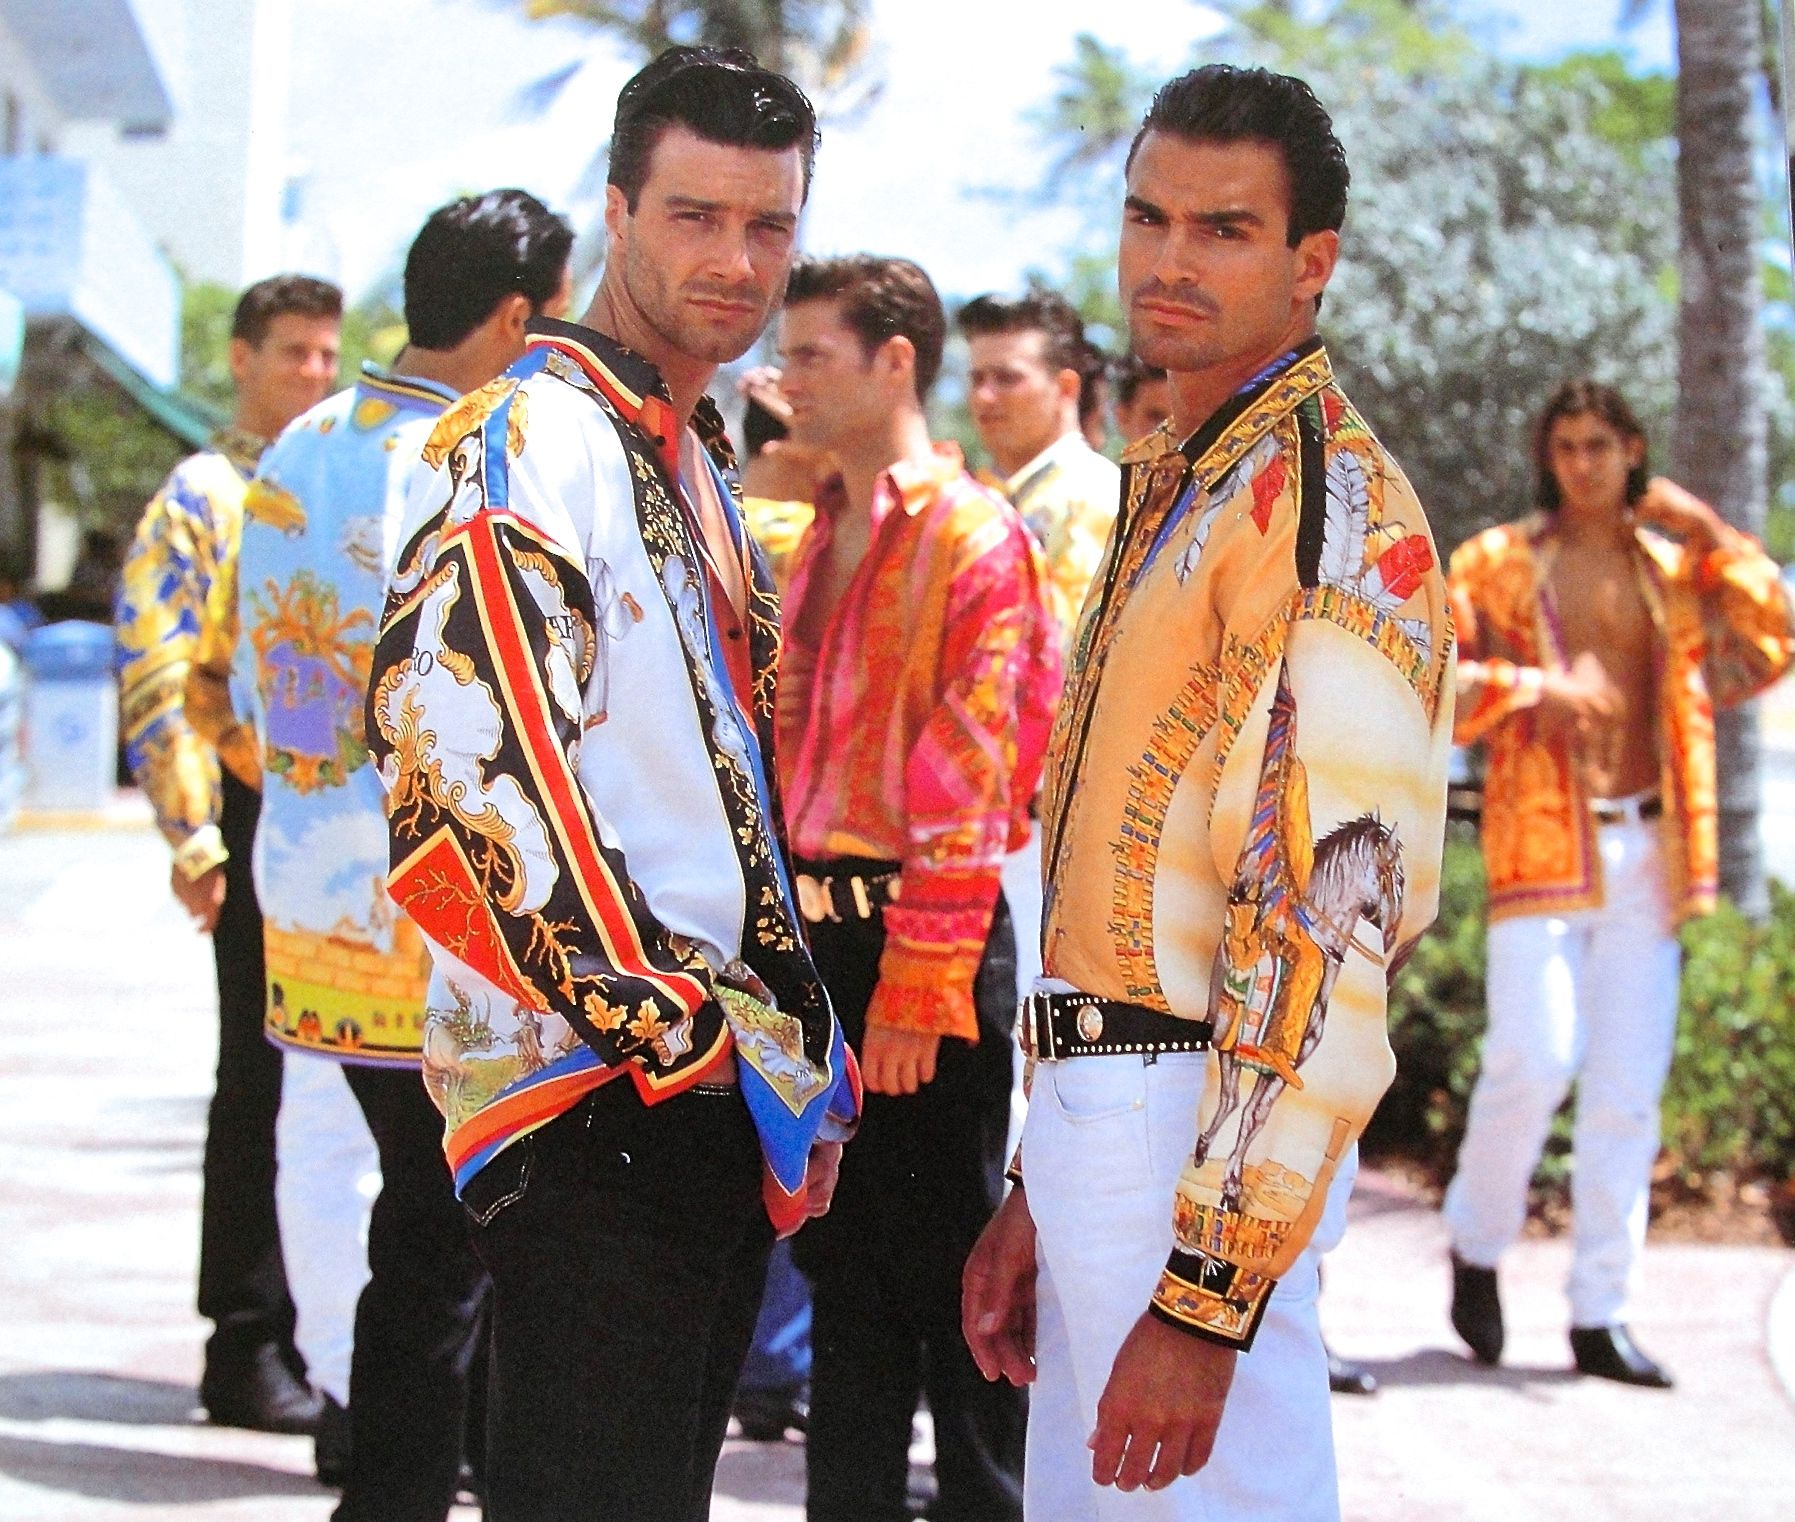 839d5ac7f8b GIANNI VERSACE SIGNATURE Spring Summer 1990 shot on location in South  Beach-Miami